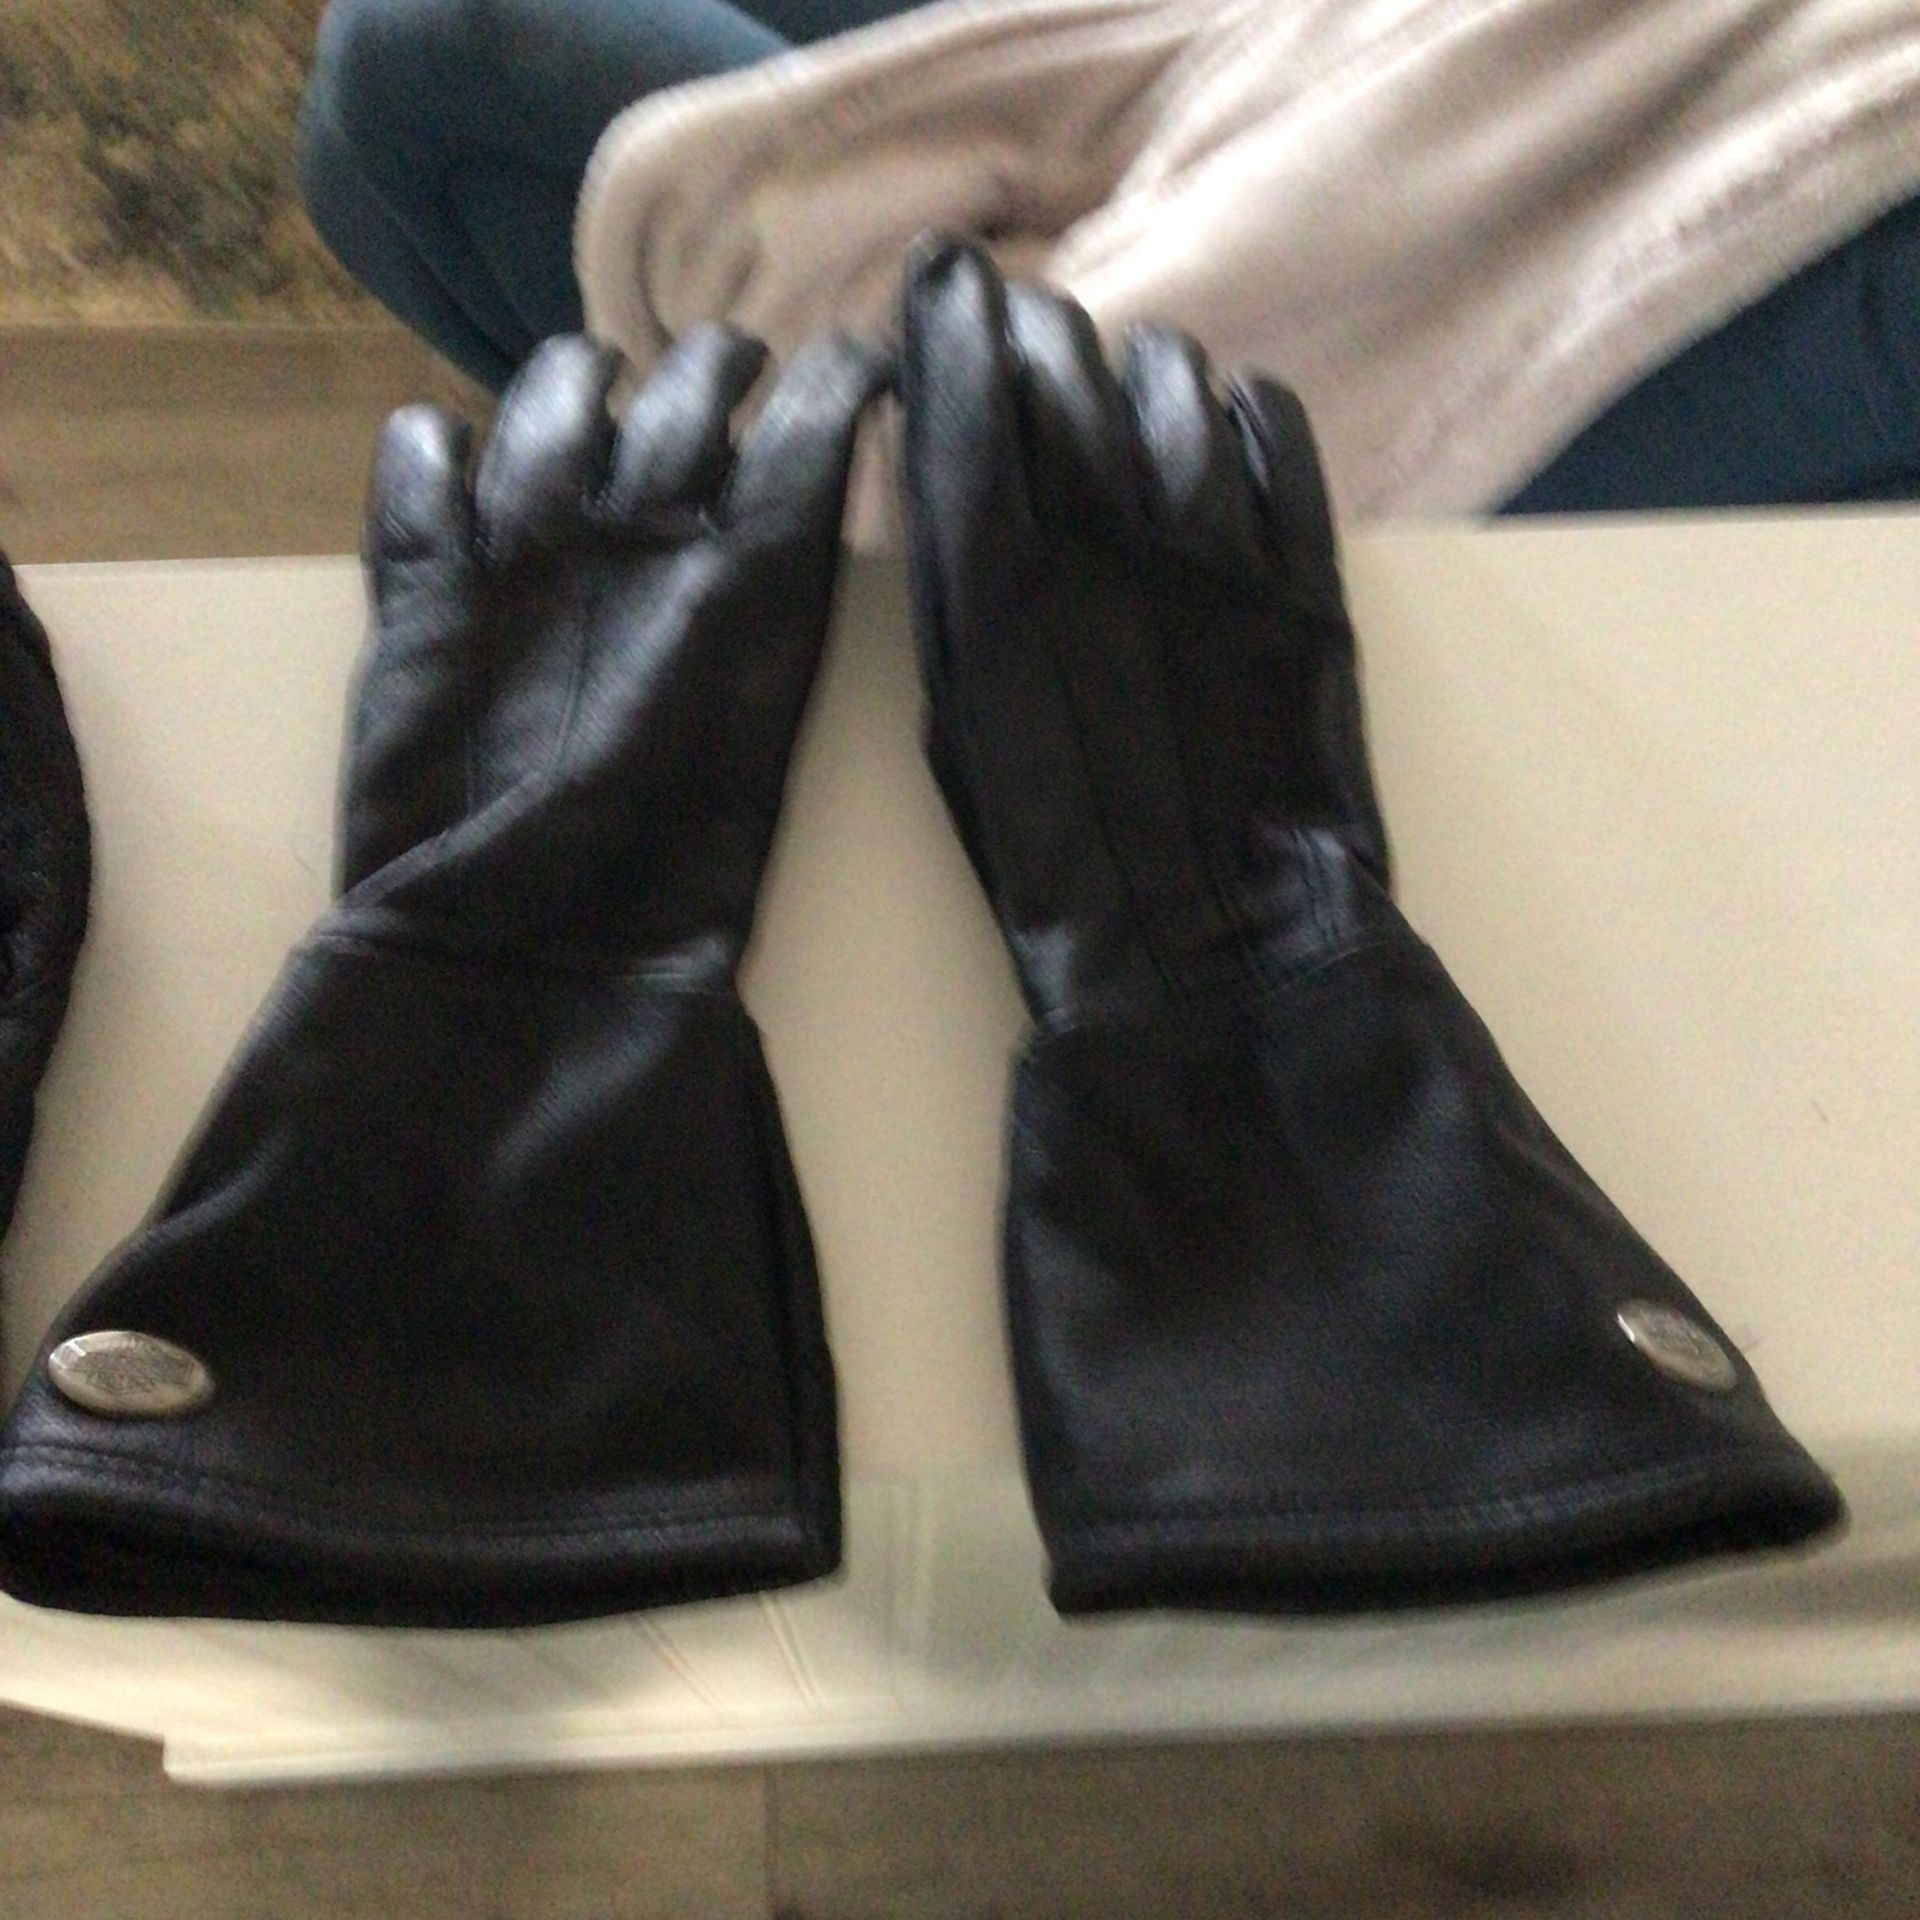 Tour Master Small gloves Good Condition and Harley Davison Long Gloves Women's Small Brand new